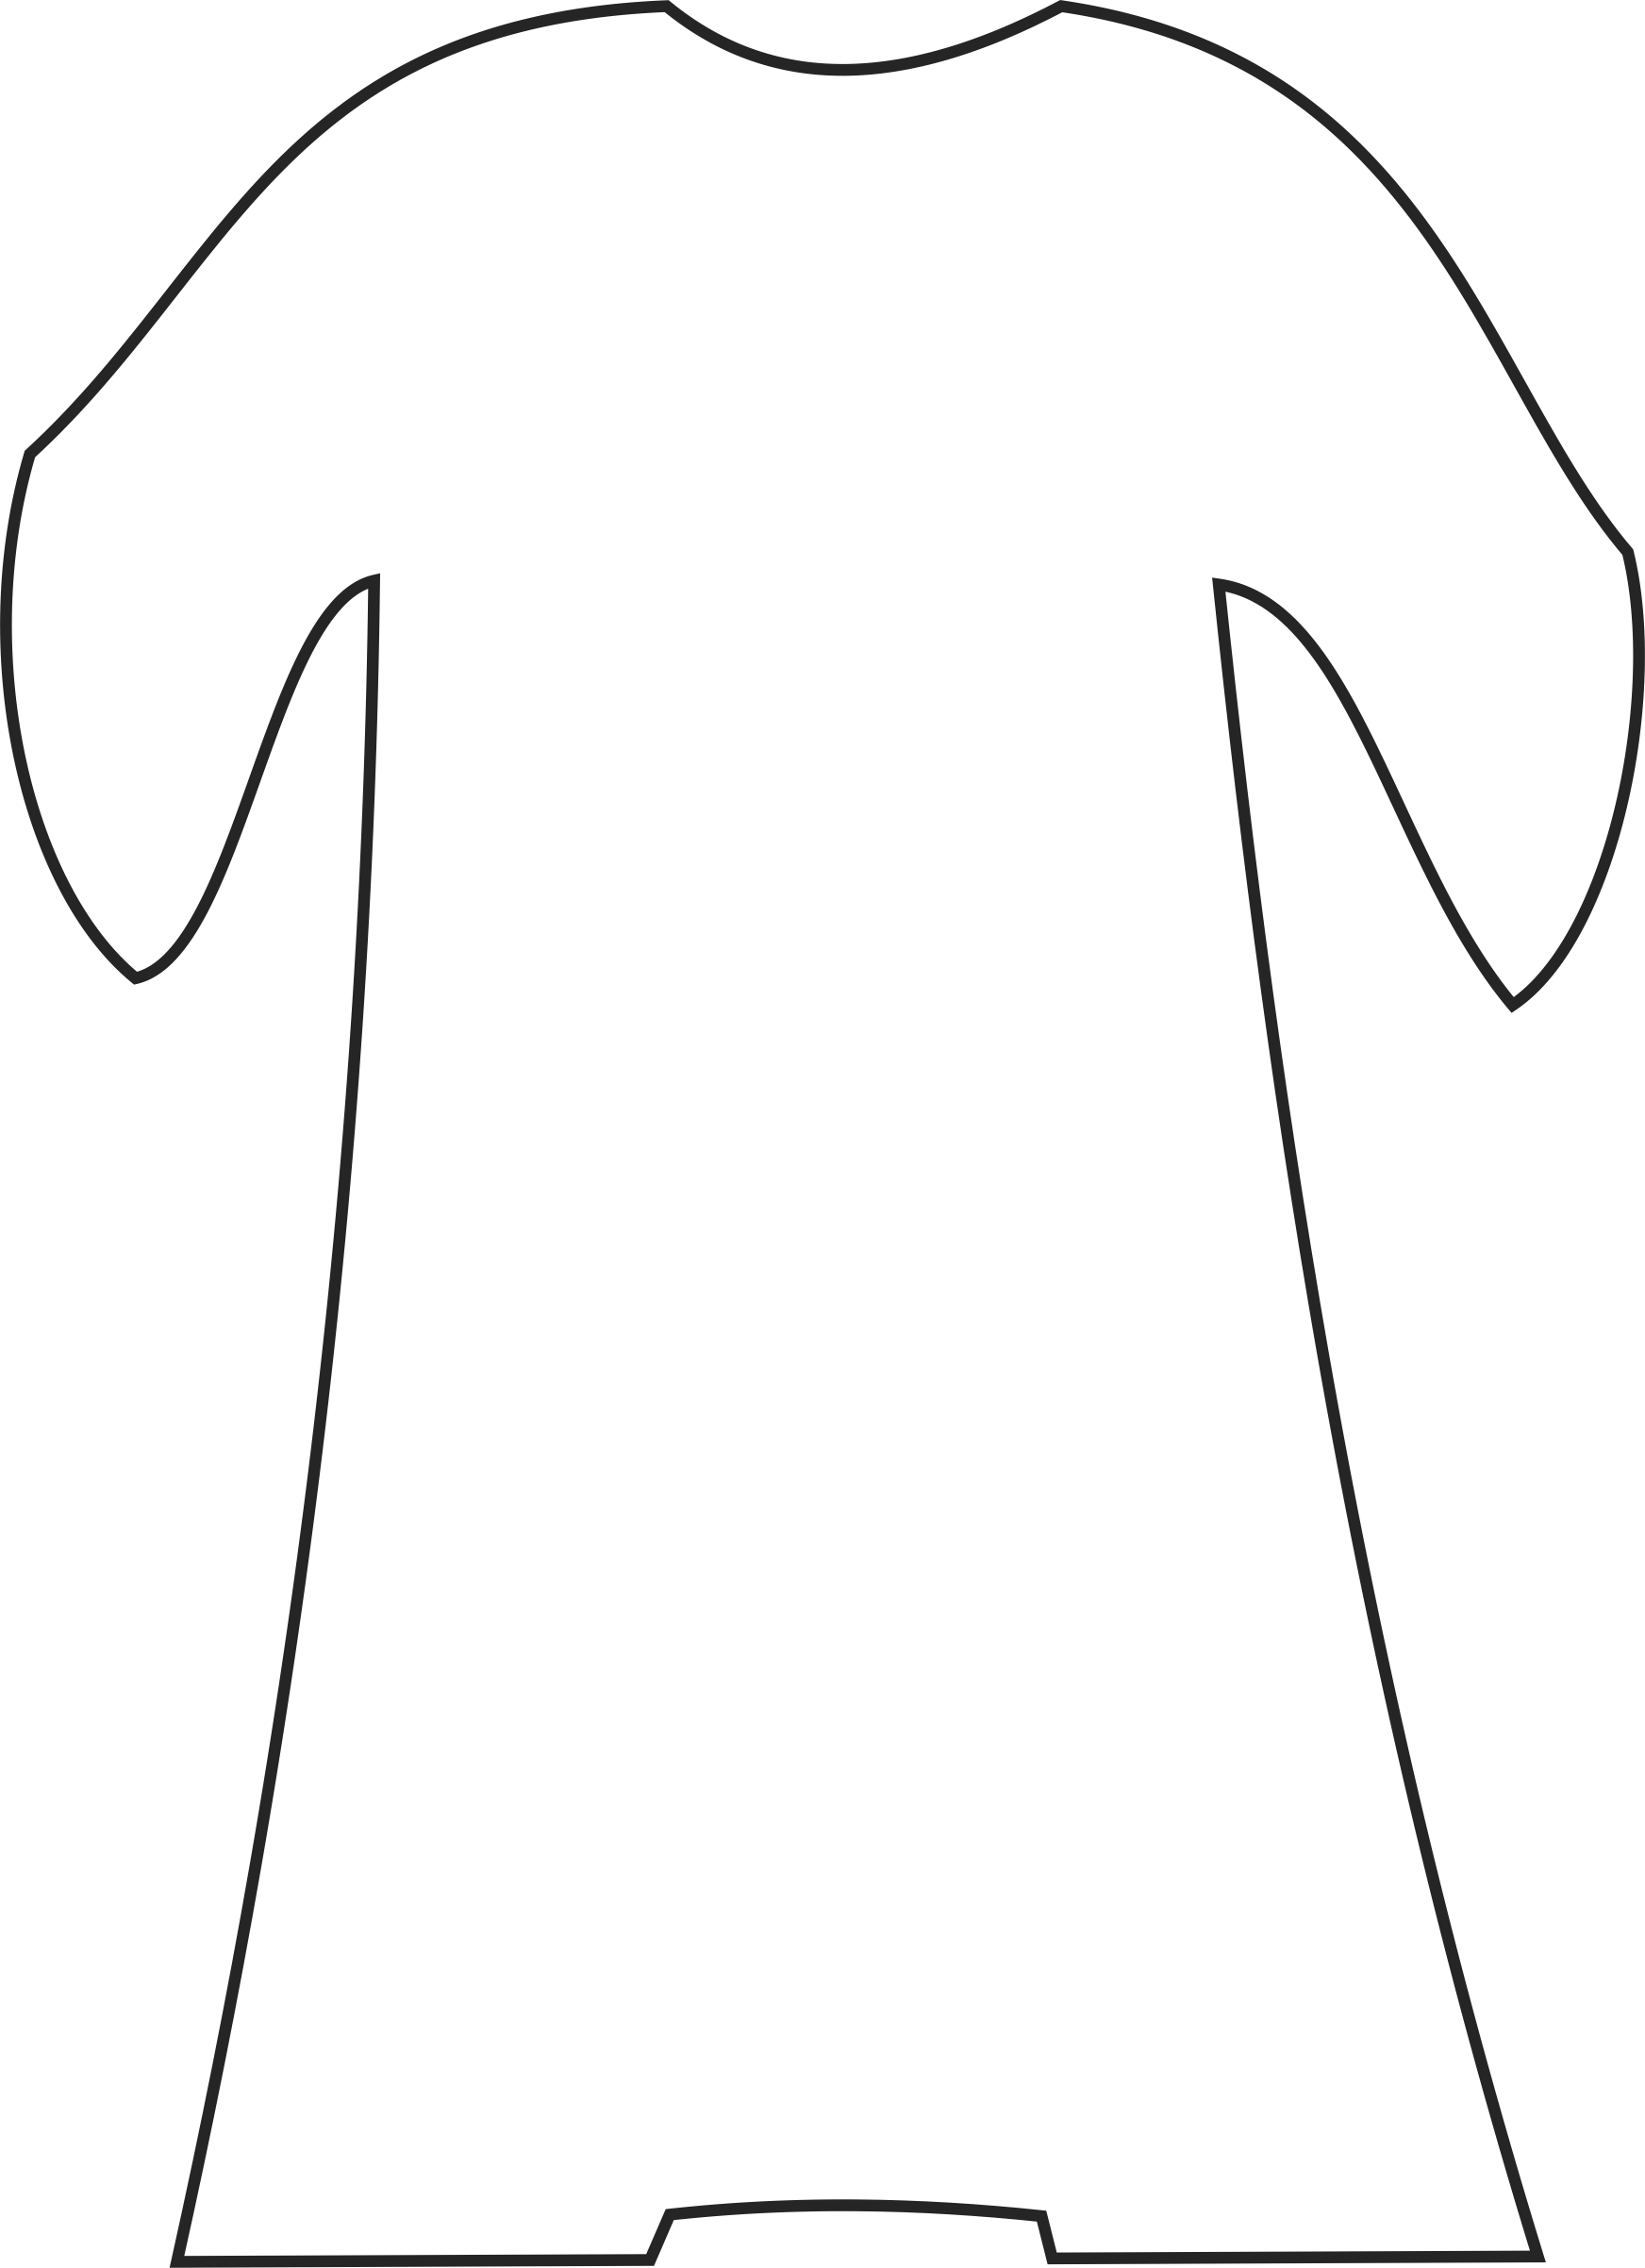 free slavery coloring pages - photo#29